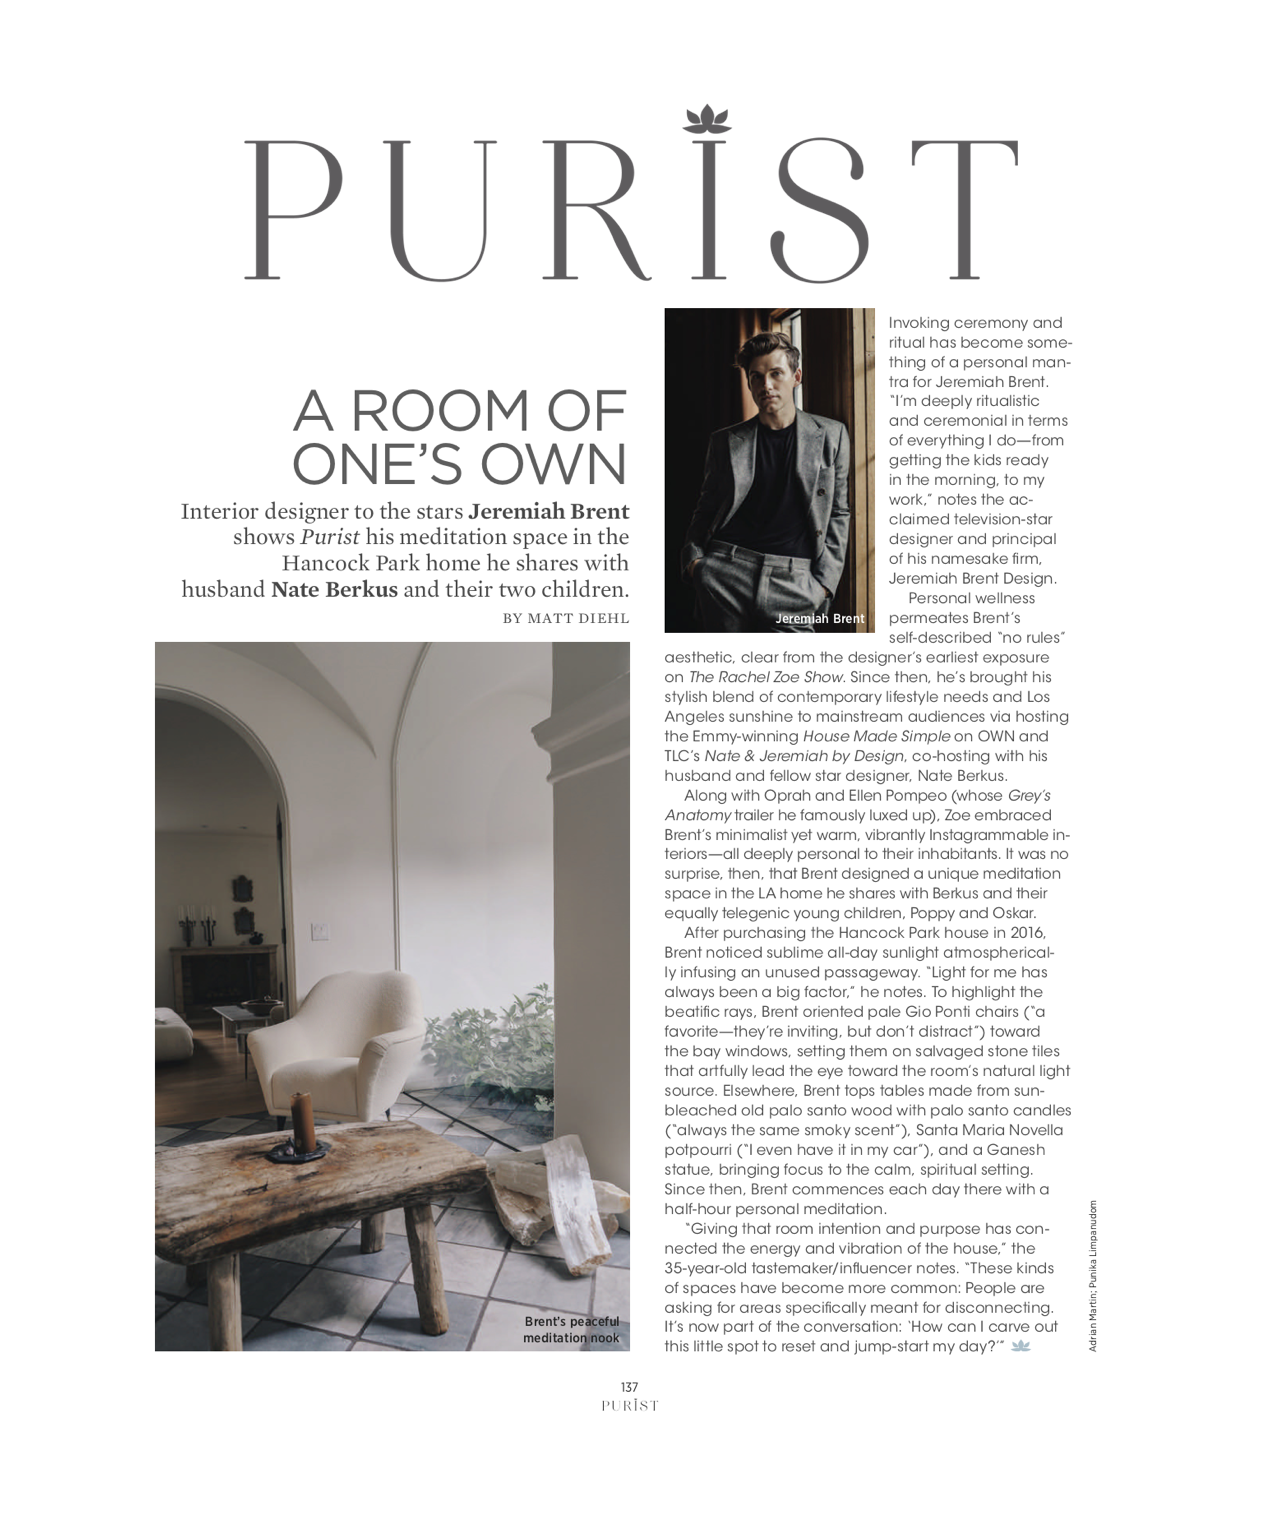 The Purist, April 2019